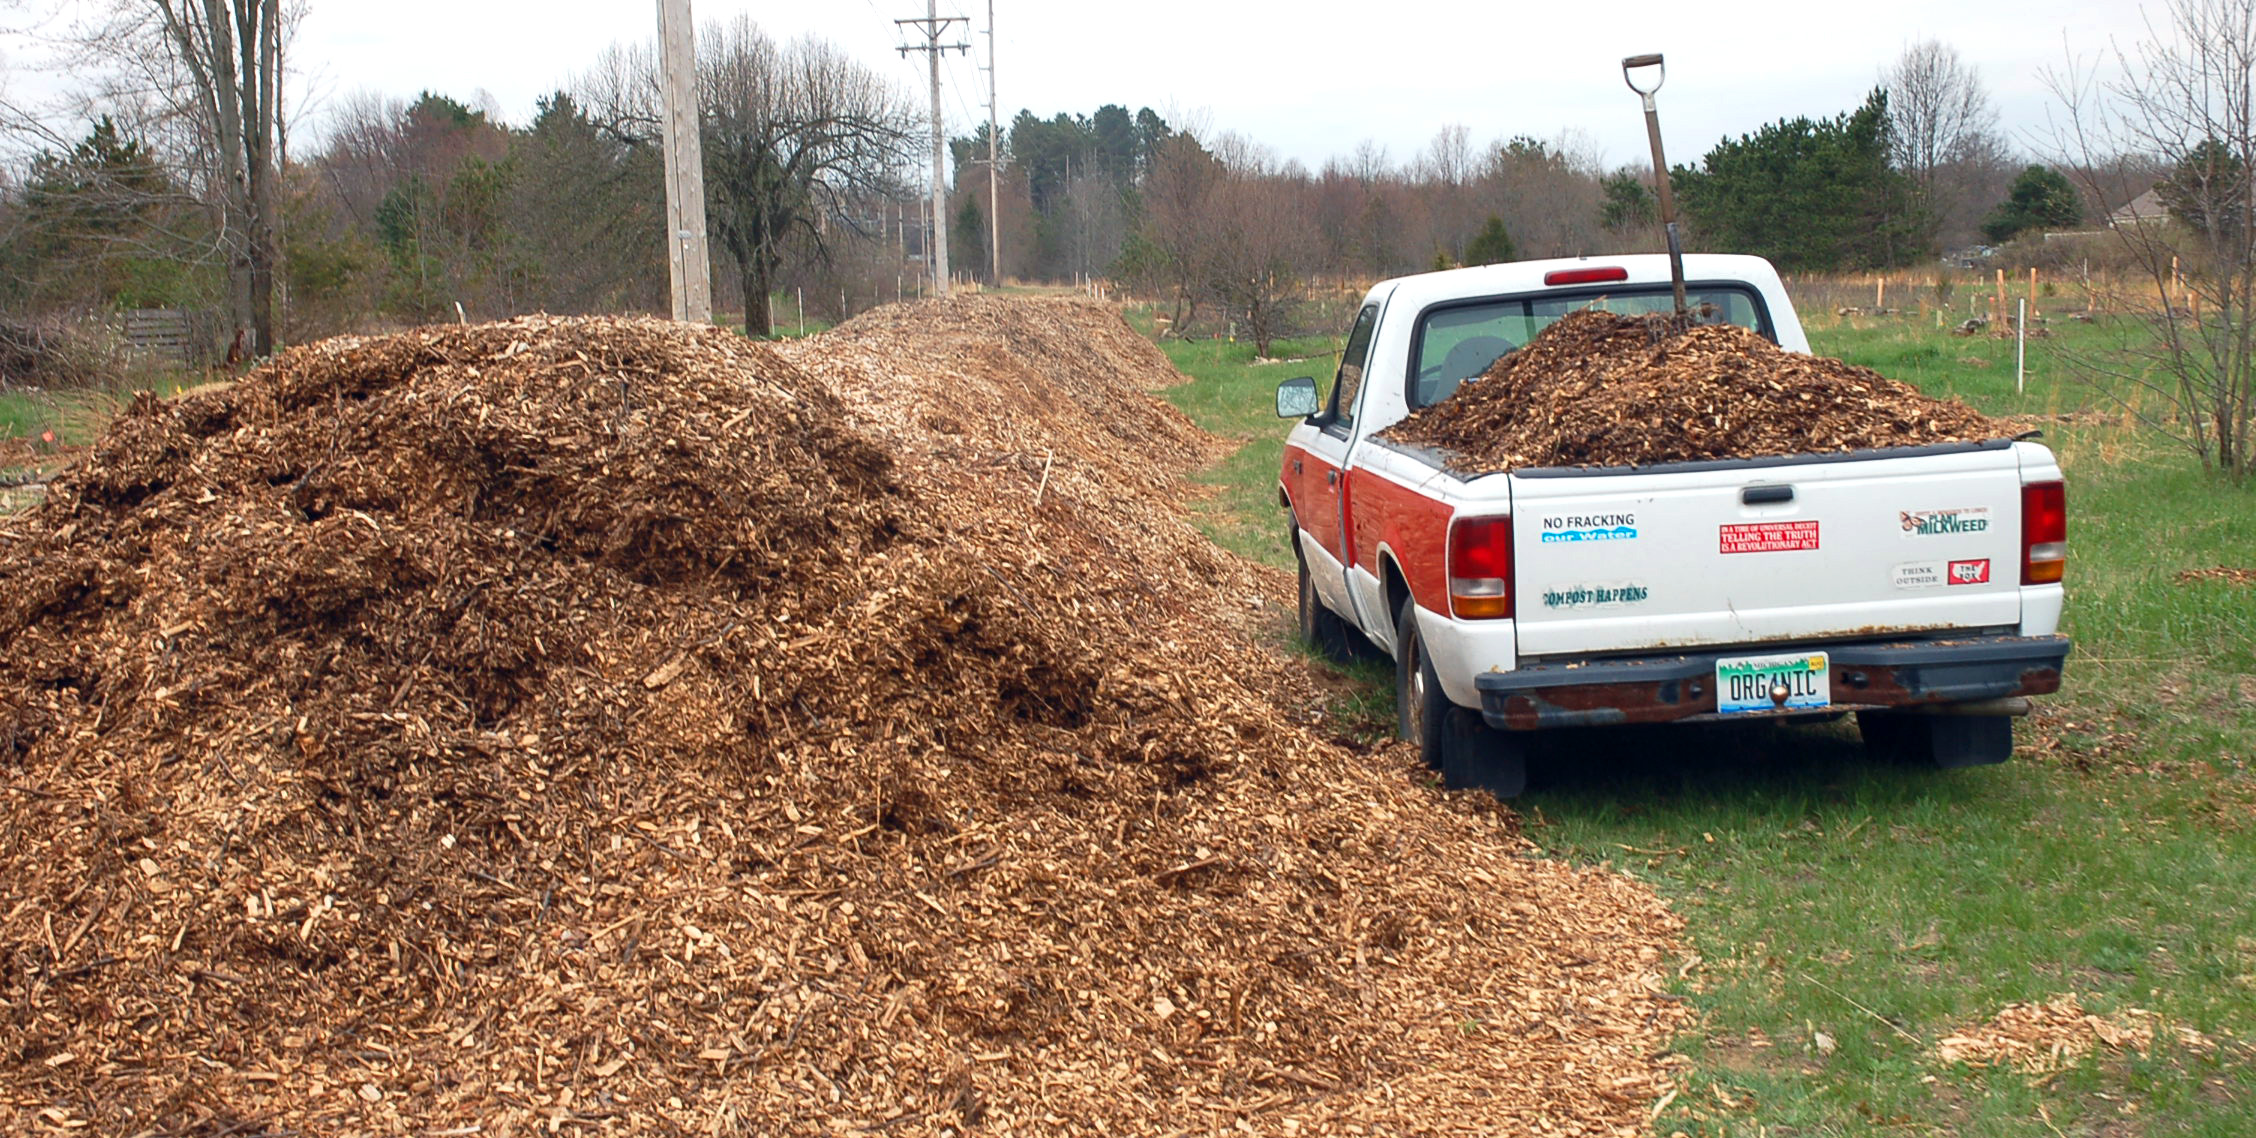 Moving Woodchips at PJ's